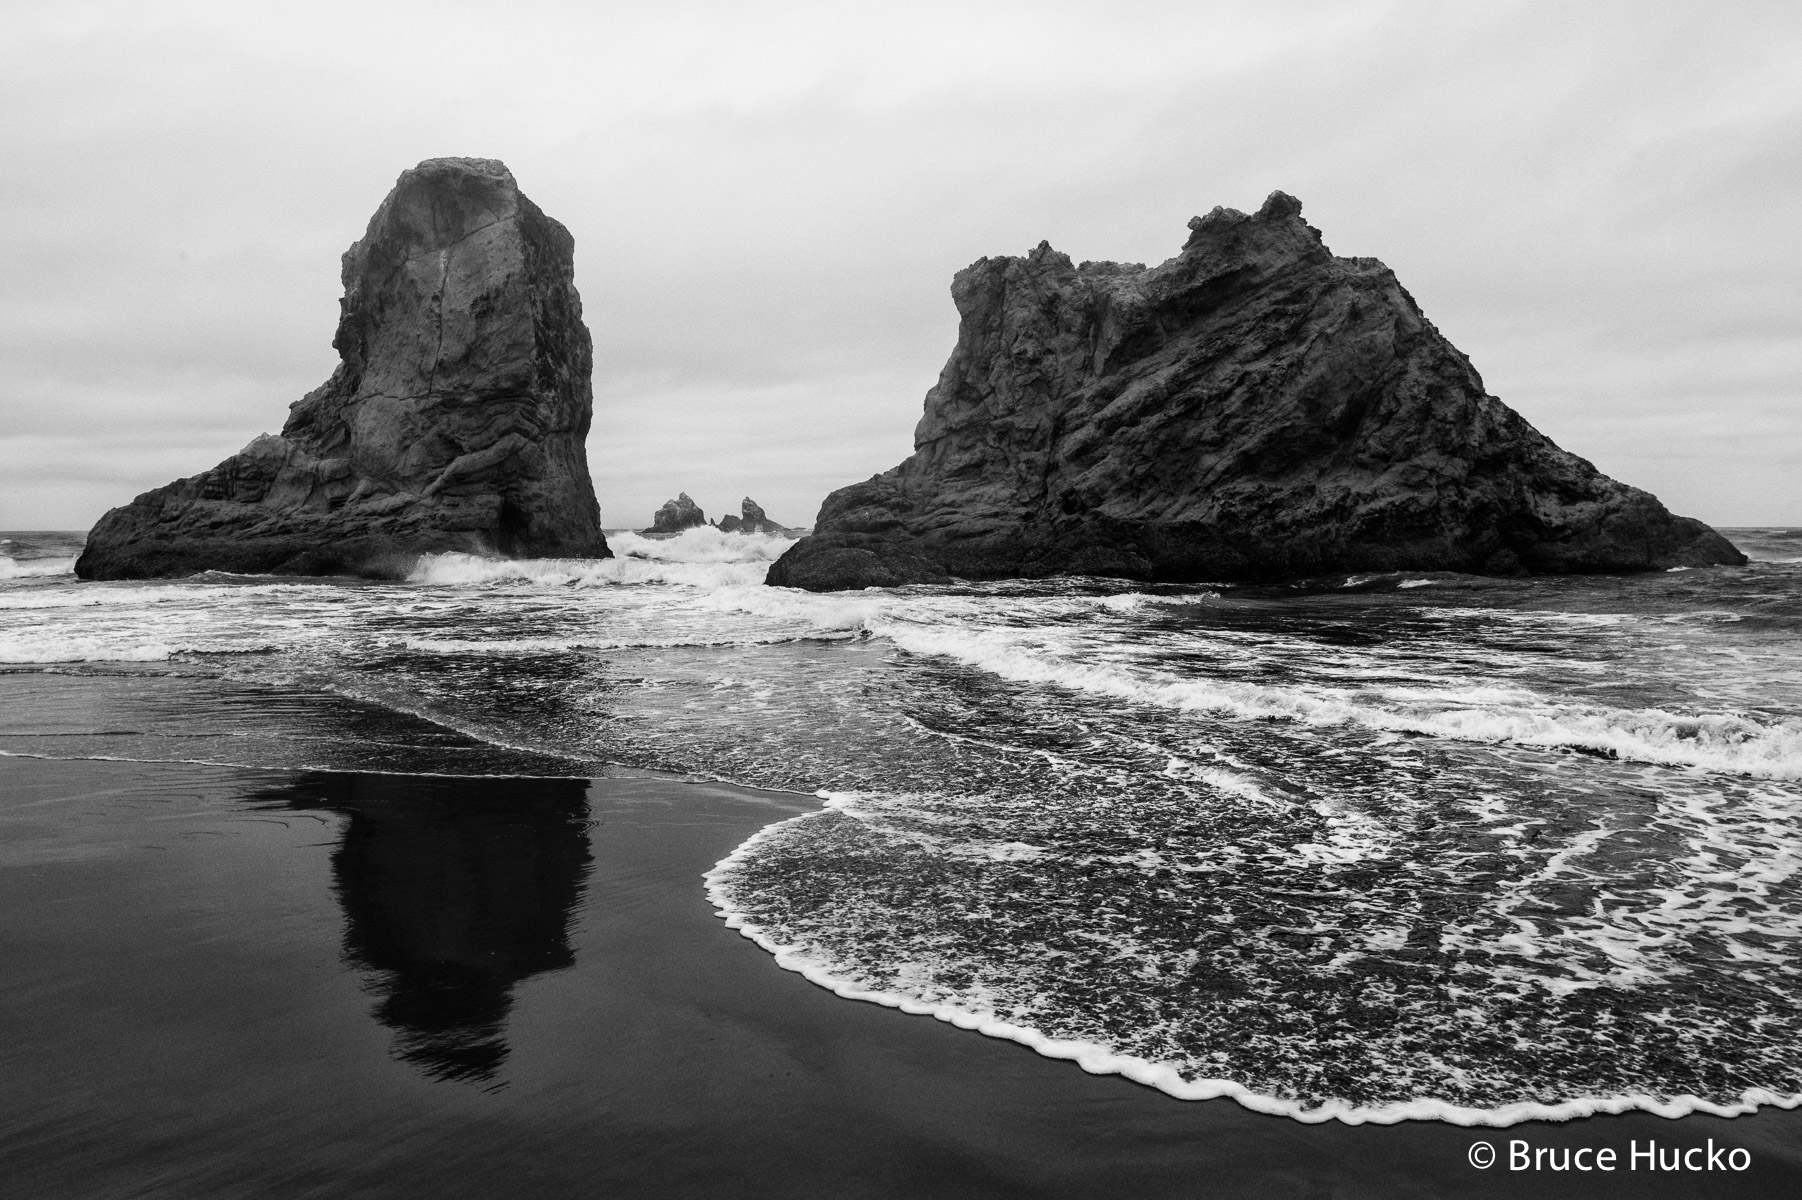 Bandon, Bandon Beach, Coast Trip 2016, Oregon Coast, photo